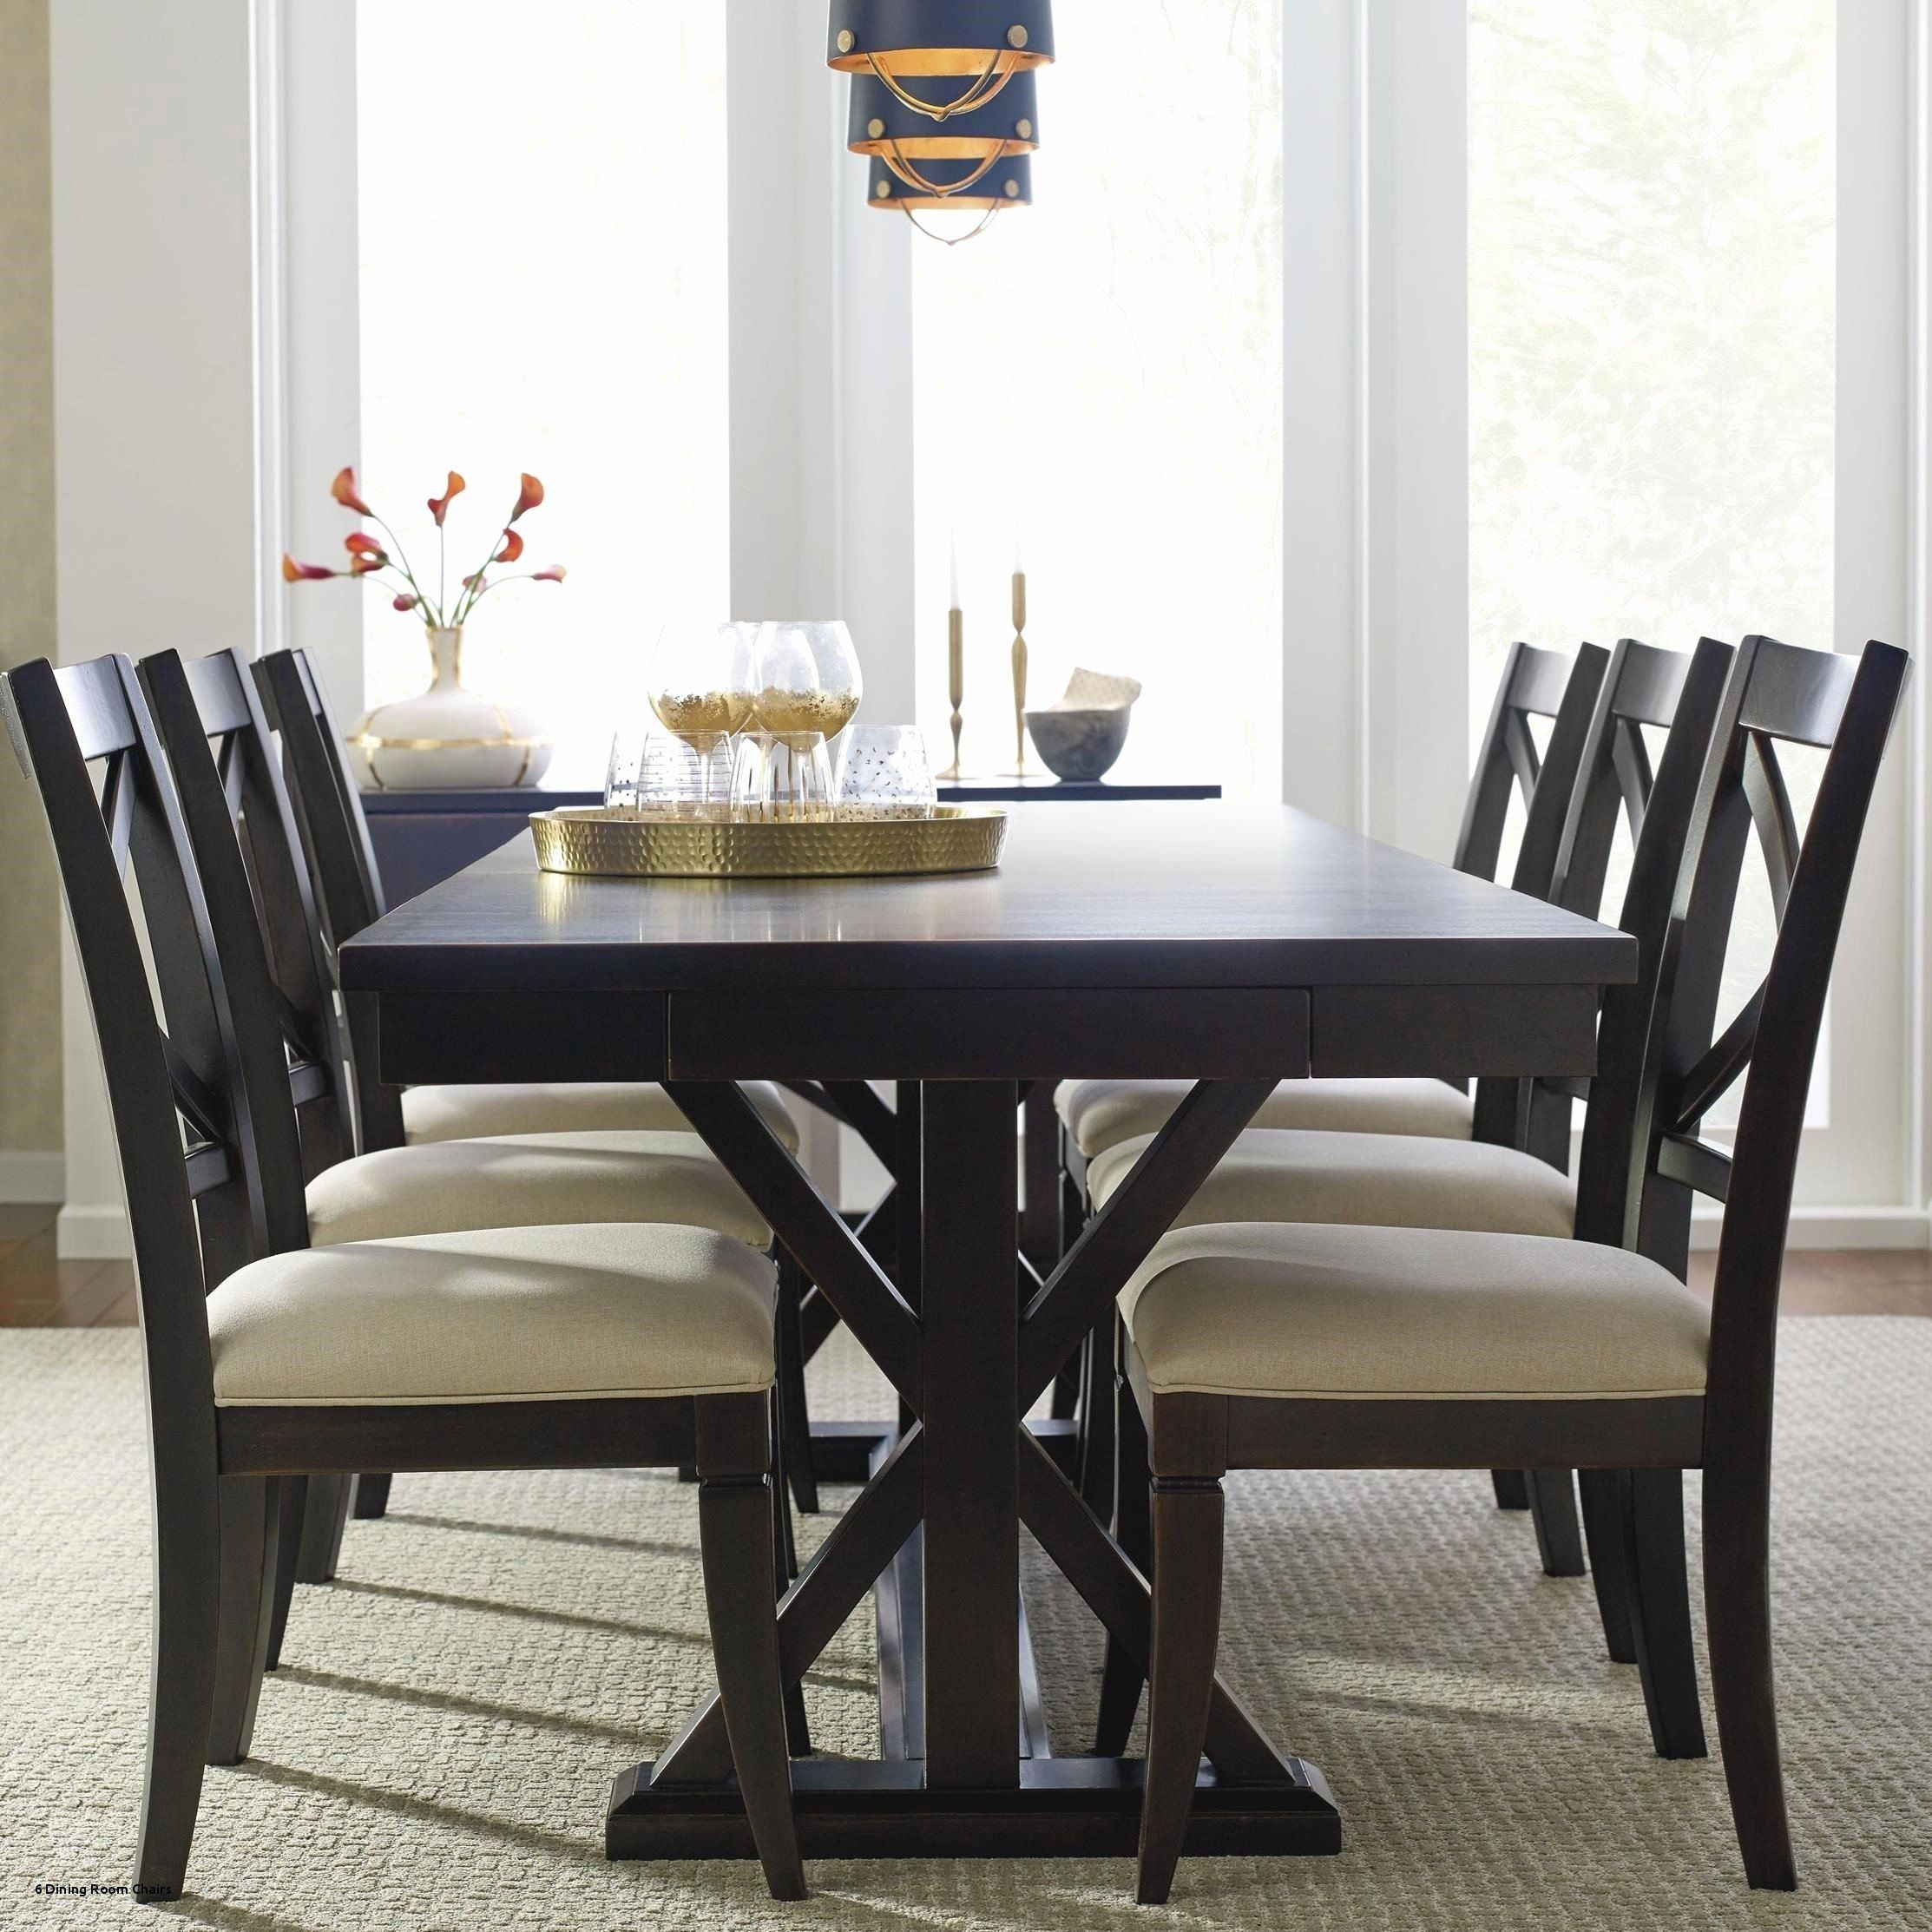 Dining Table For Small Space Inspirational Cheap Dining Table Set Present Design And Style 51 Home Design Set Ruang Makan Meja Makan Ruang Makan Dapur